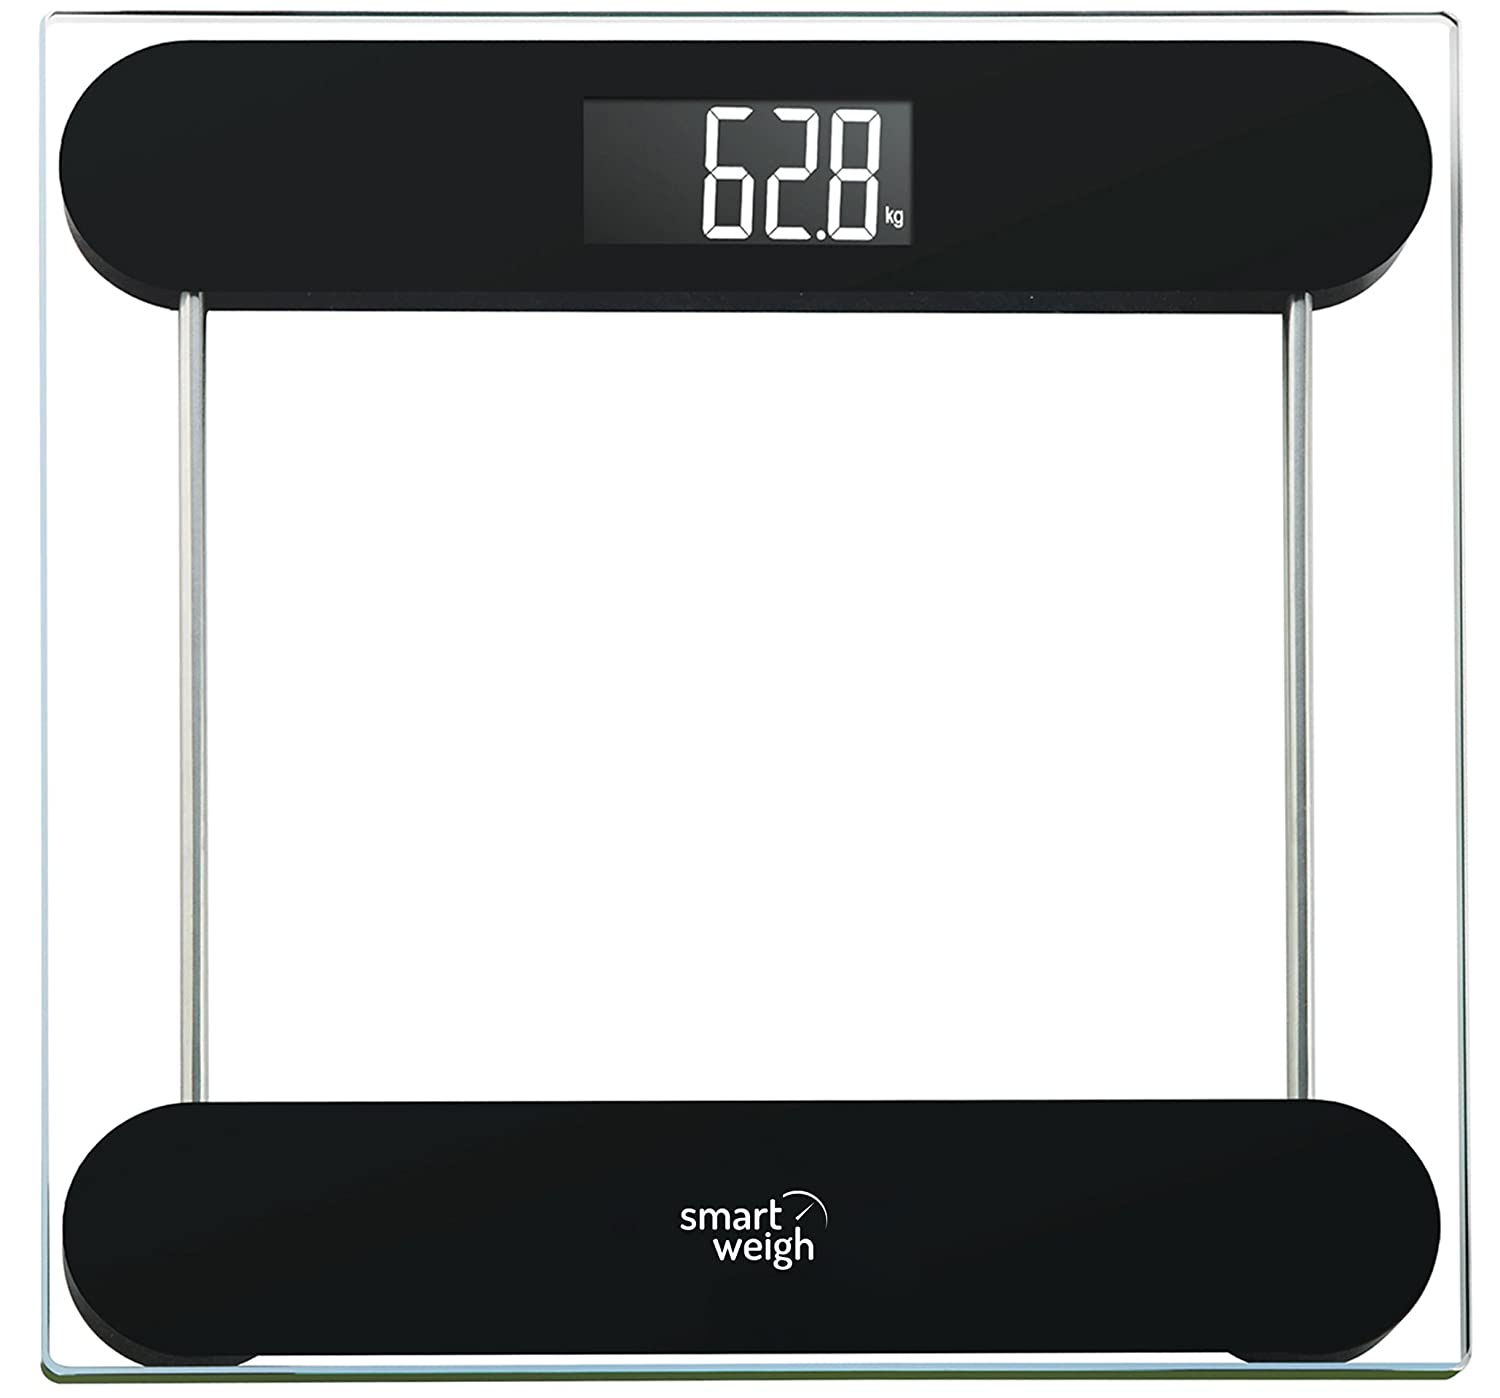 Amazoncom Smart Weigh Precision Digital Vanity Bathroom Scale - Large display digital bathroom scales for bathroom decor ideas